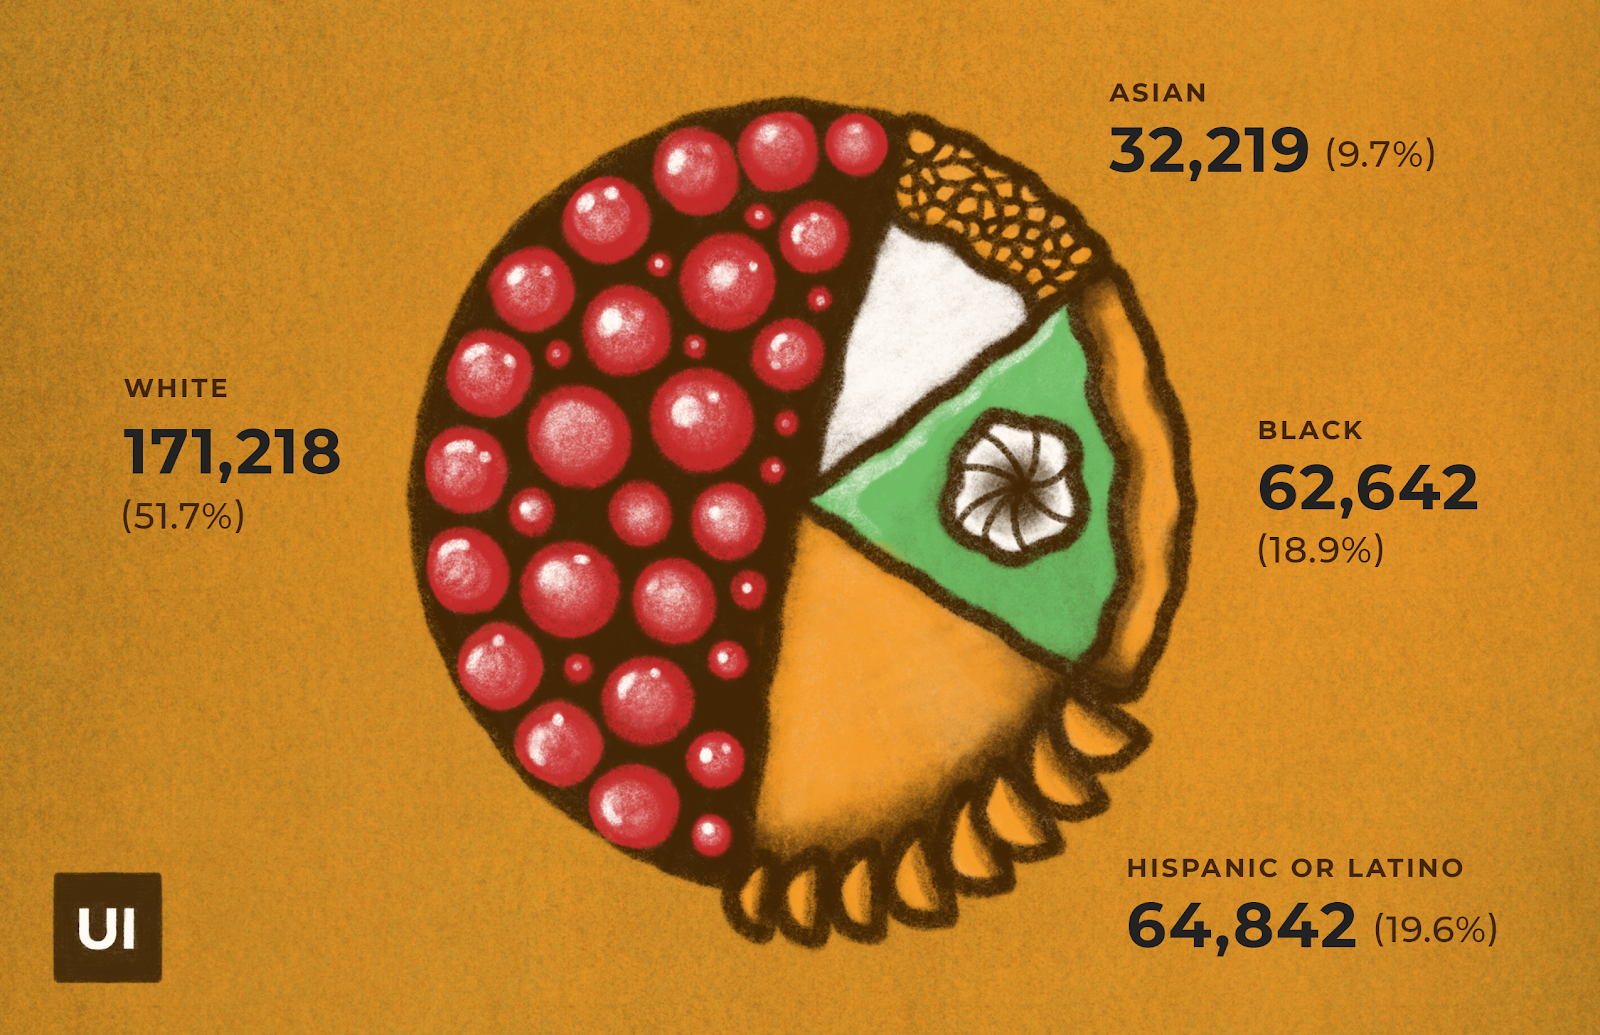 Pie chart made of different types of pie. Percentage of research participants by race/ethnicity.